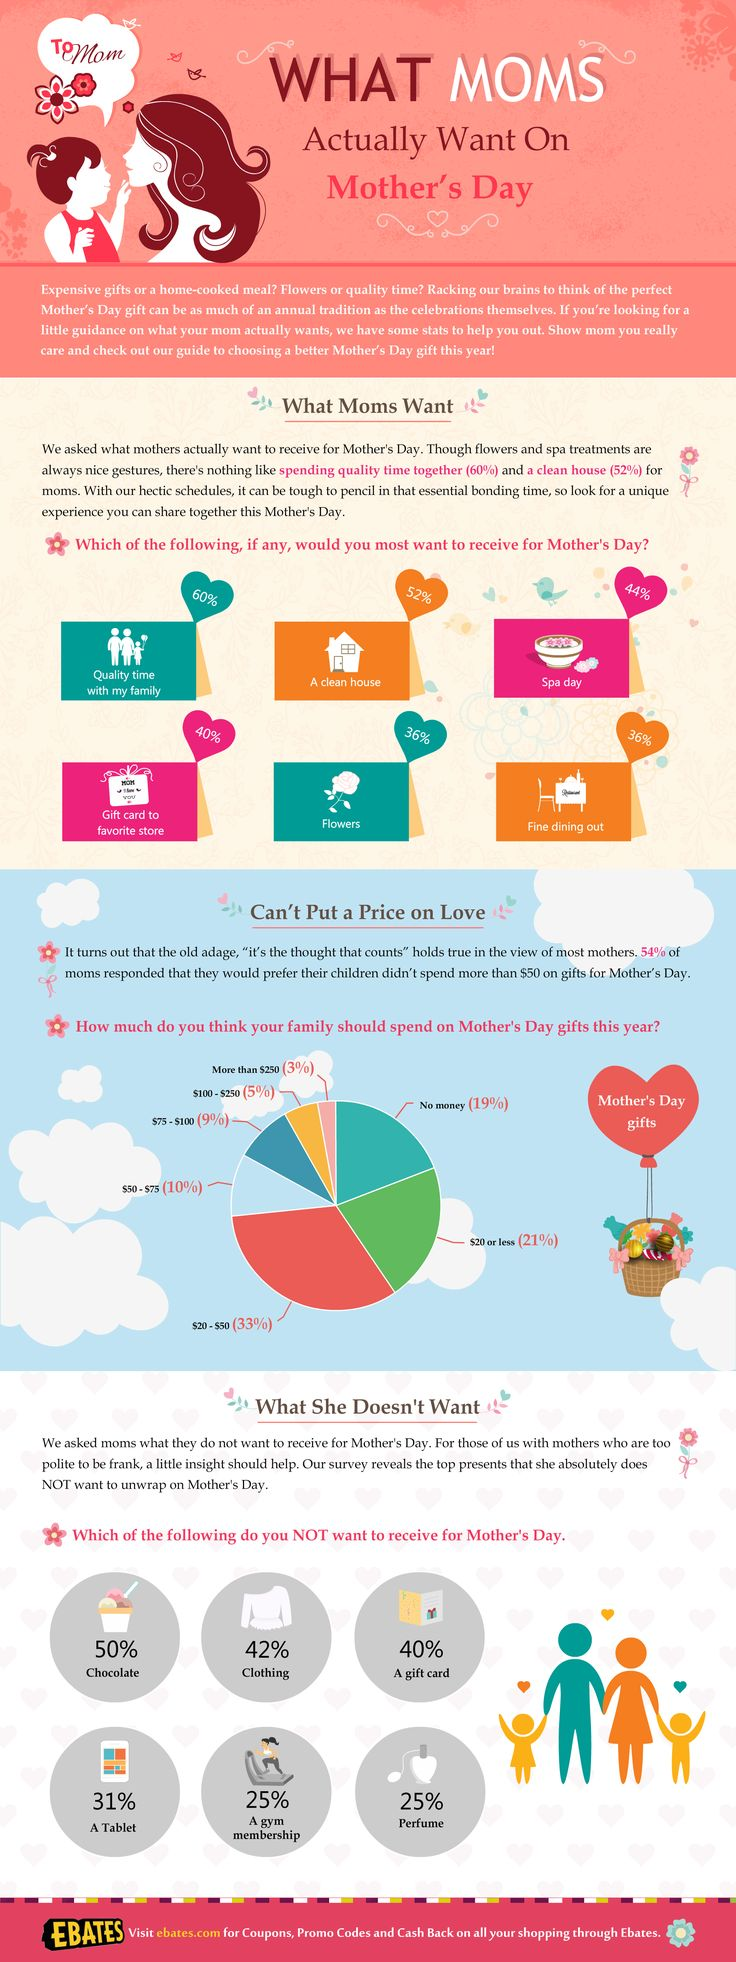 9 best happy fathers day images on pinterest dads father and what do moms actually want for mothers day infographic fandeluxe Choice Image